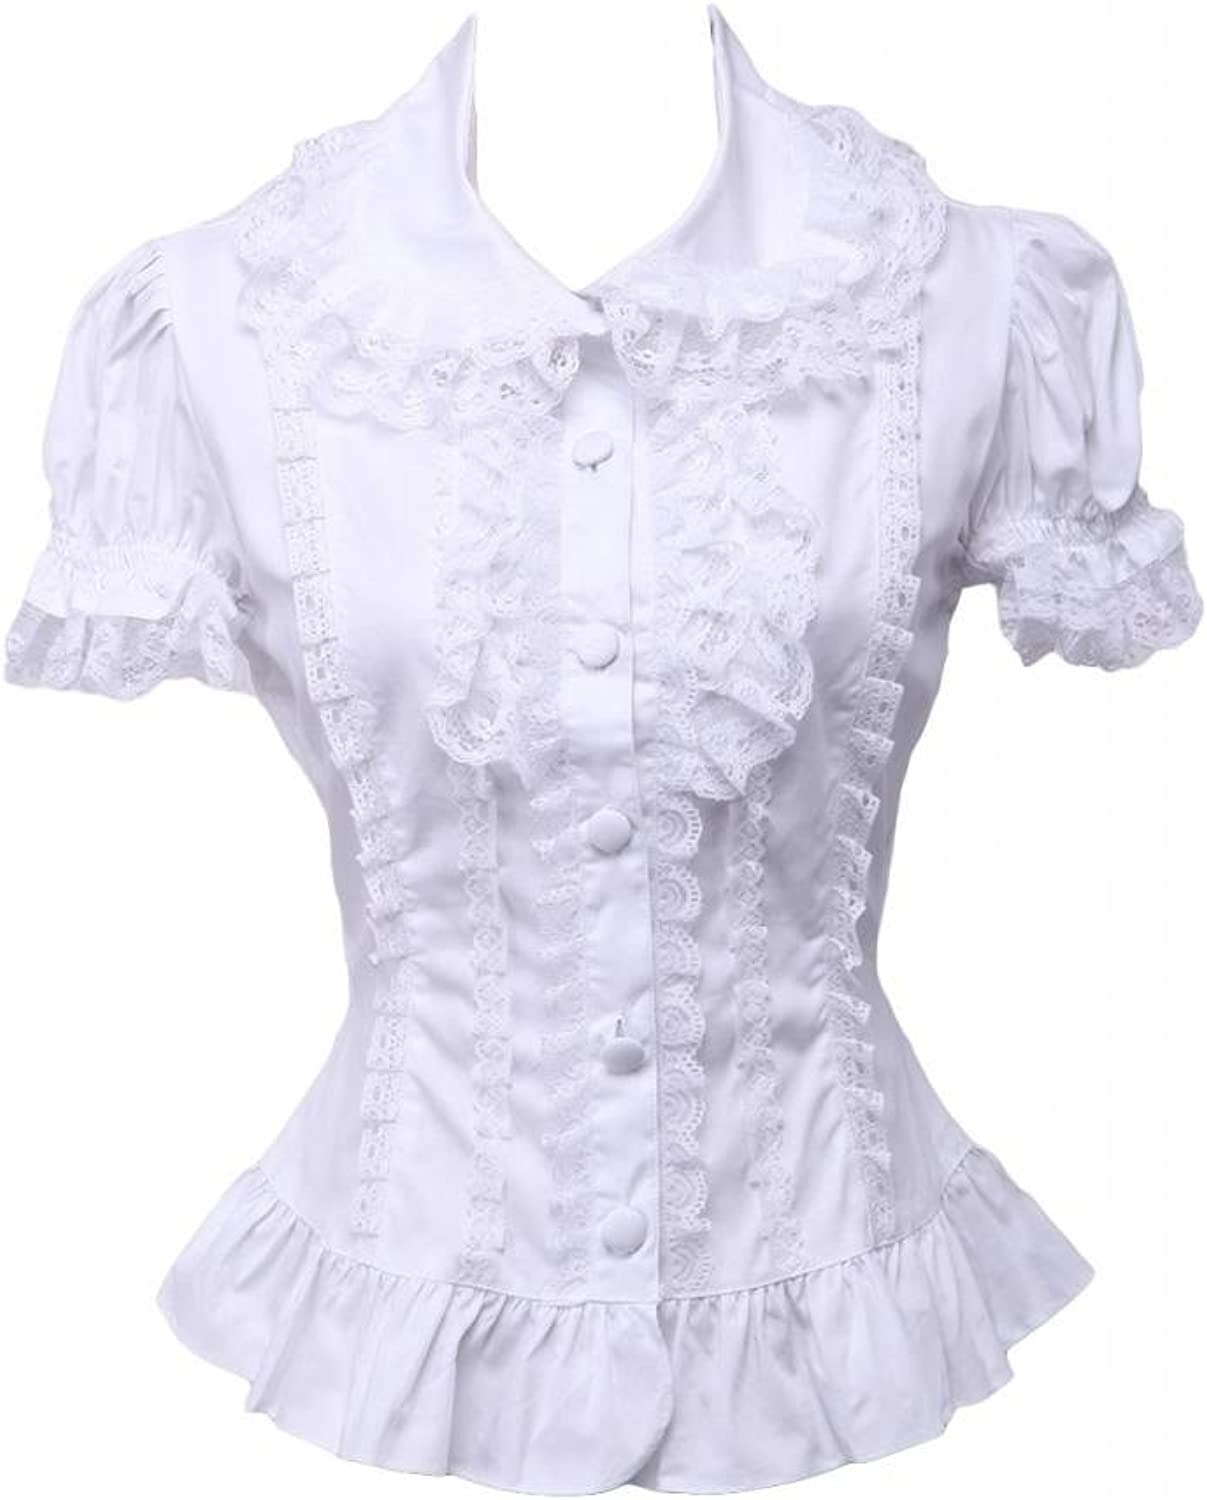 Hugme Sweet White Cotton Lolita Blouse Short Sleeves Layered Lace Trim TurnDown Collar